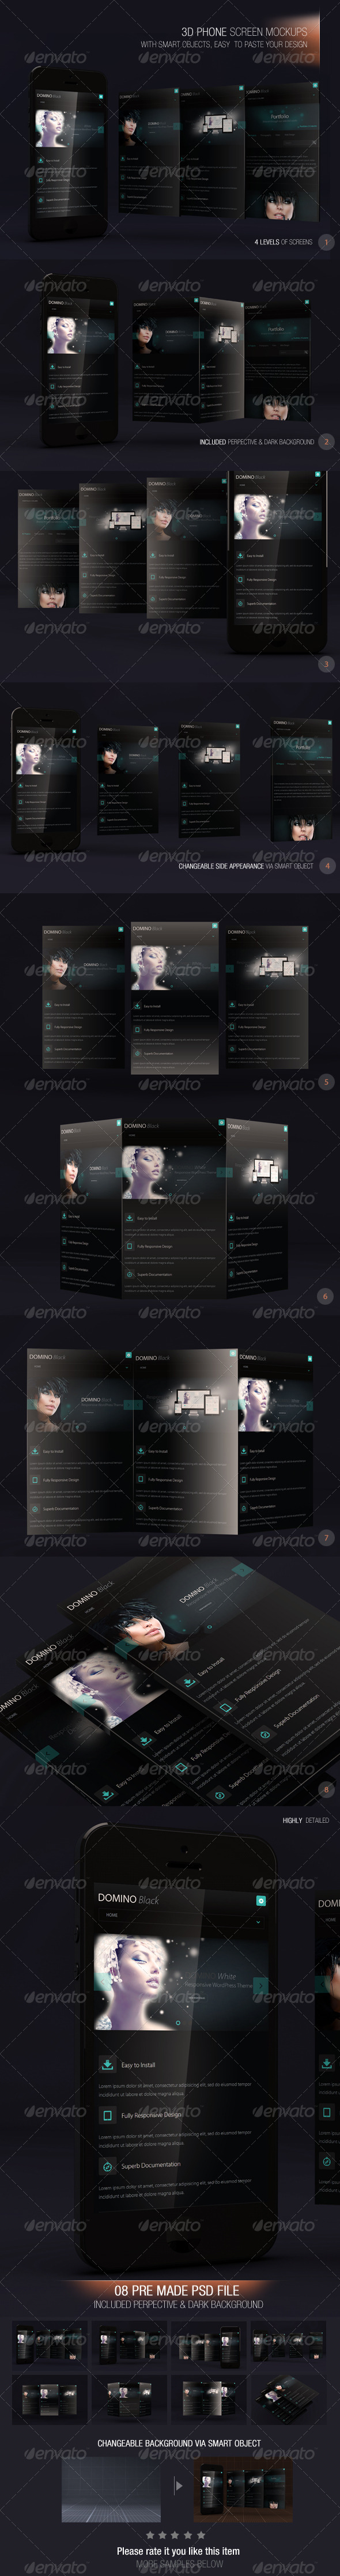 GraphicRiver 3D Phone Screen Mockups 7141635